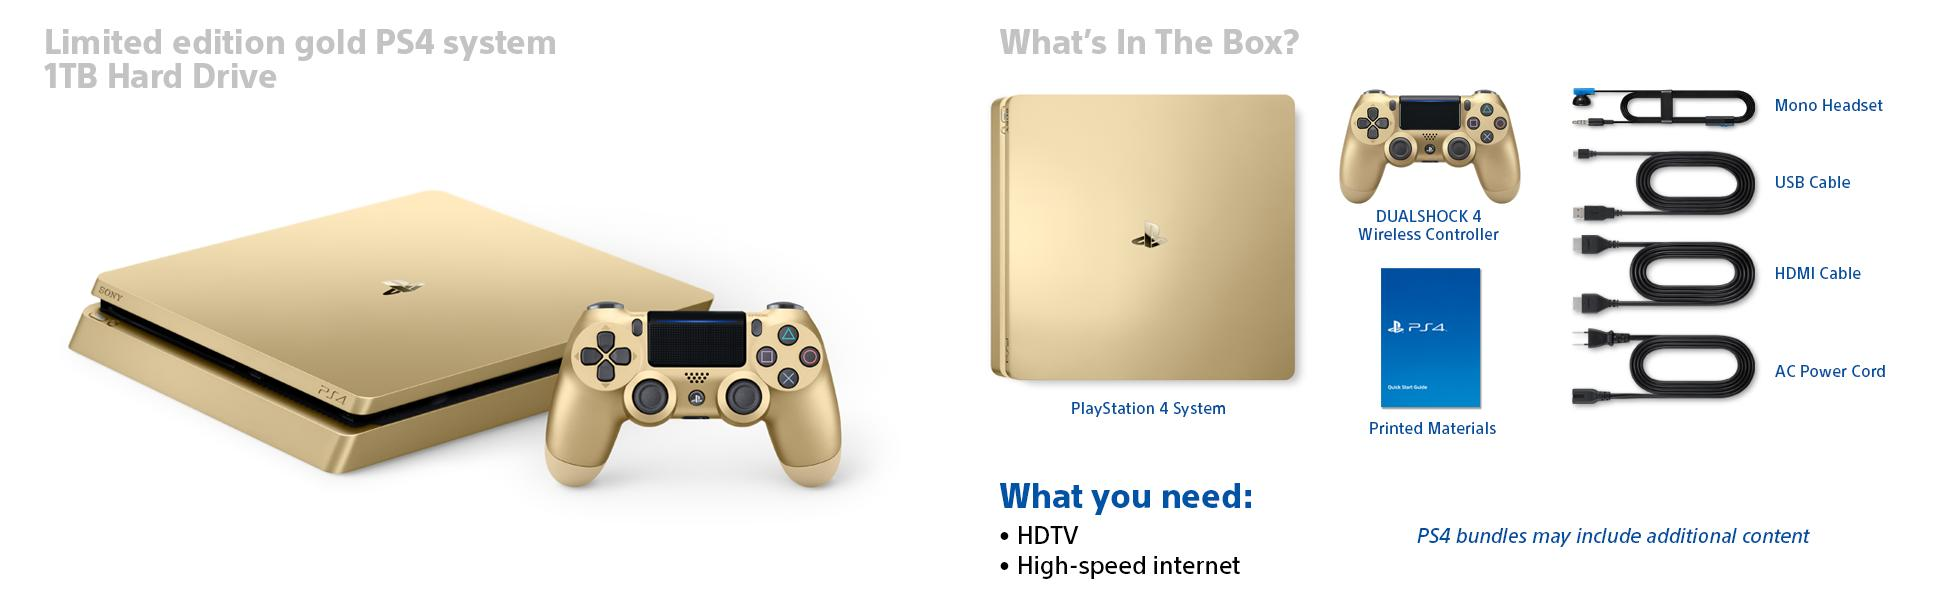 Amazon.com: PlayStation 4 Slim 1TB Gold Console ...